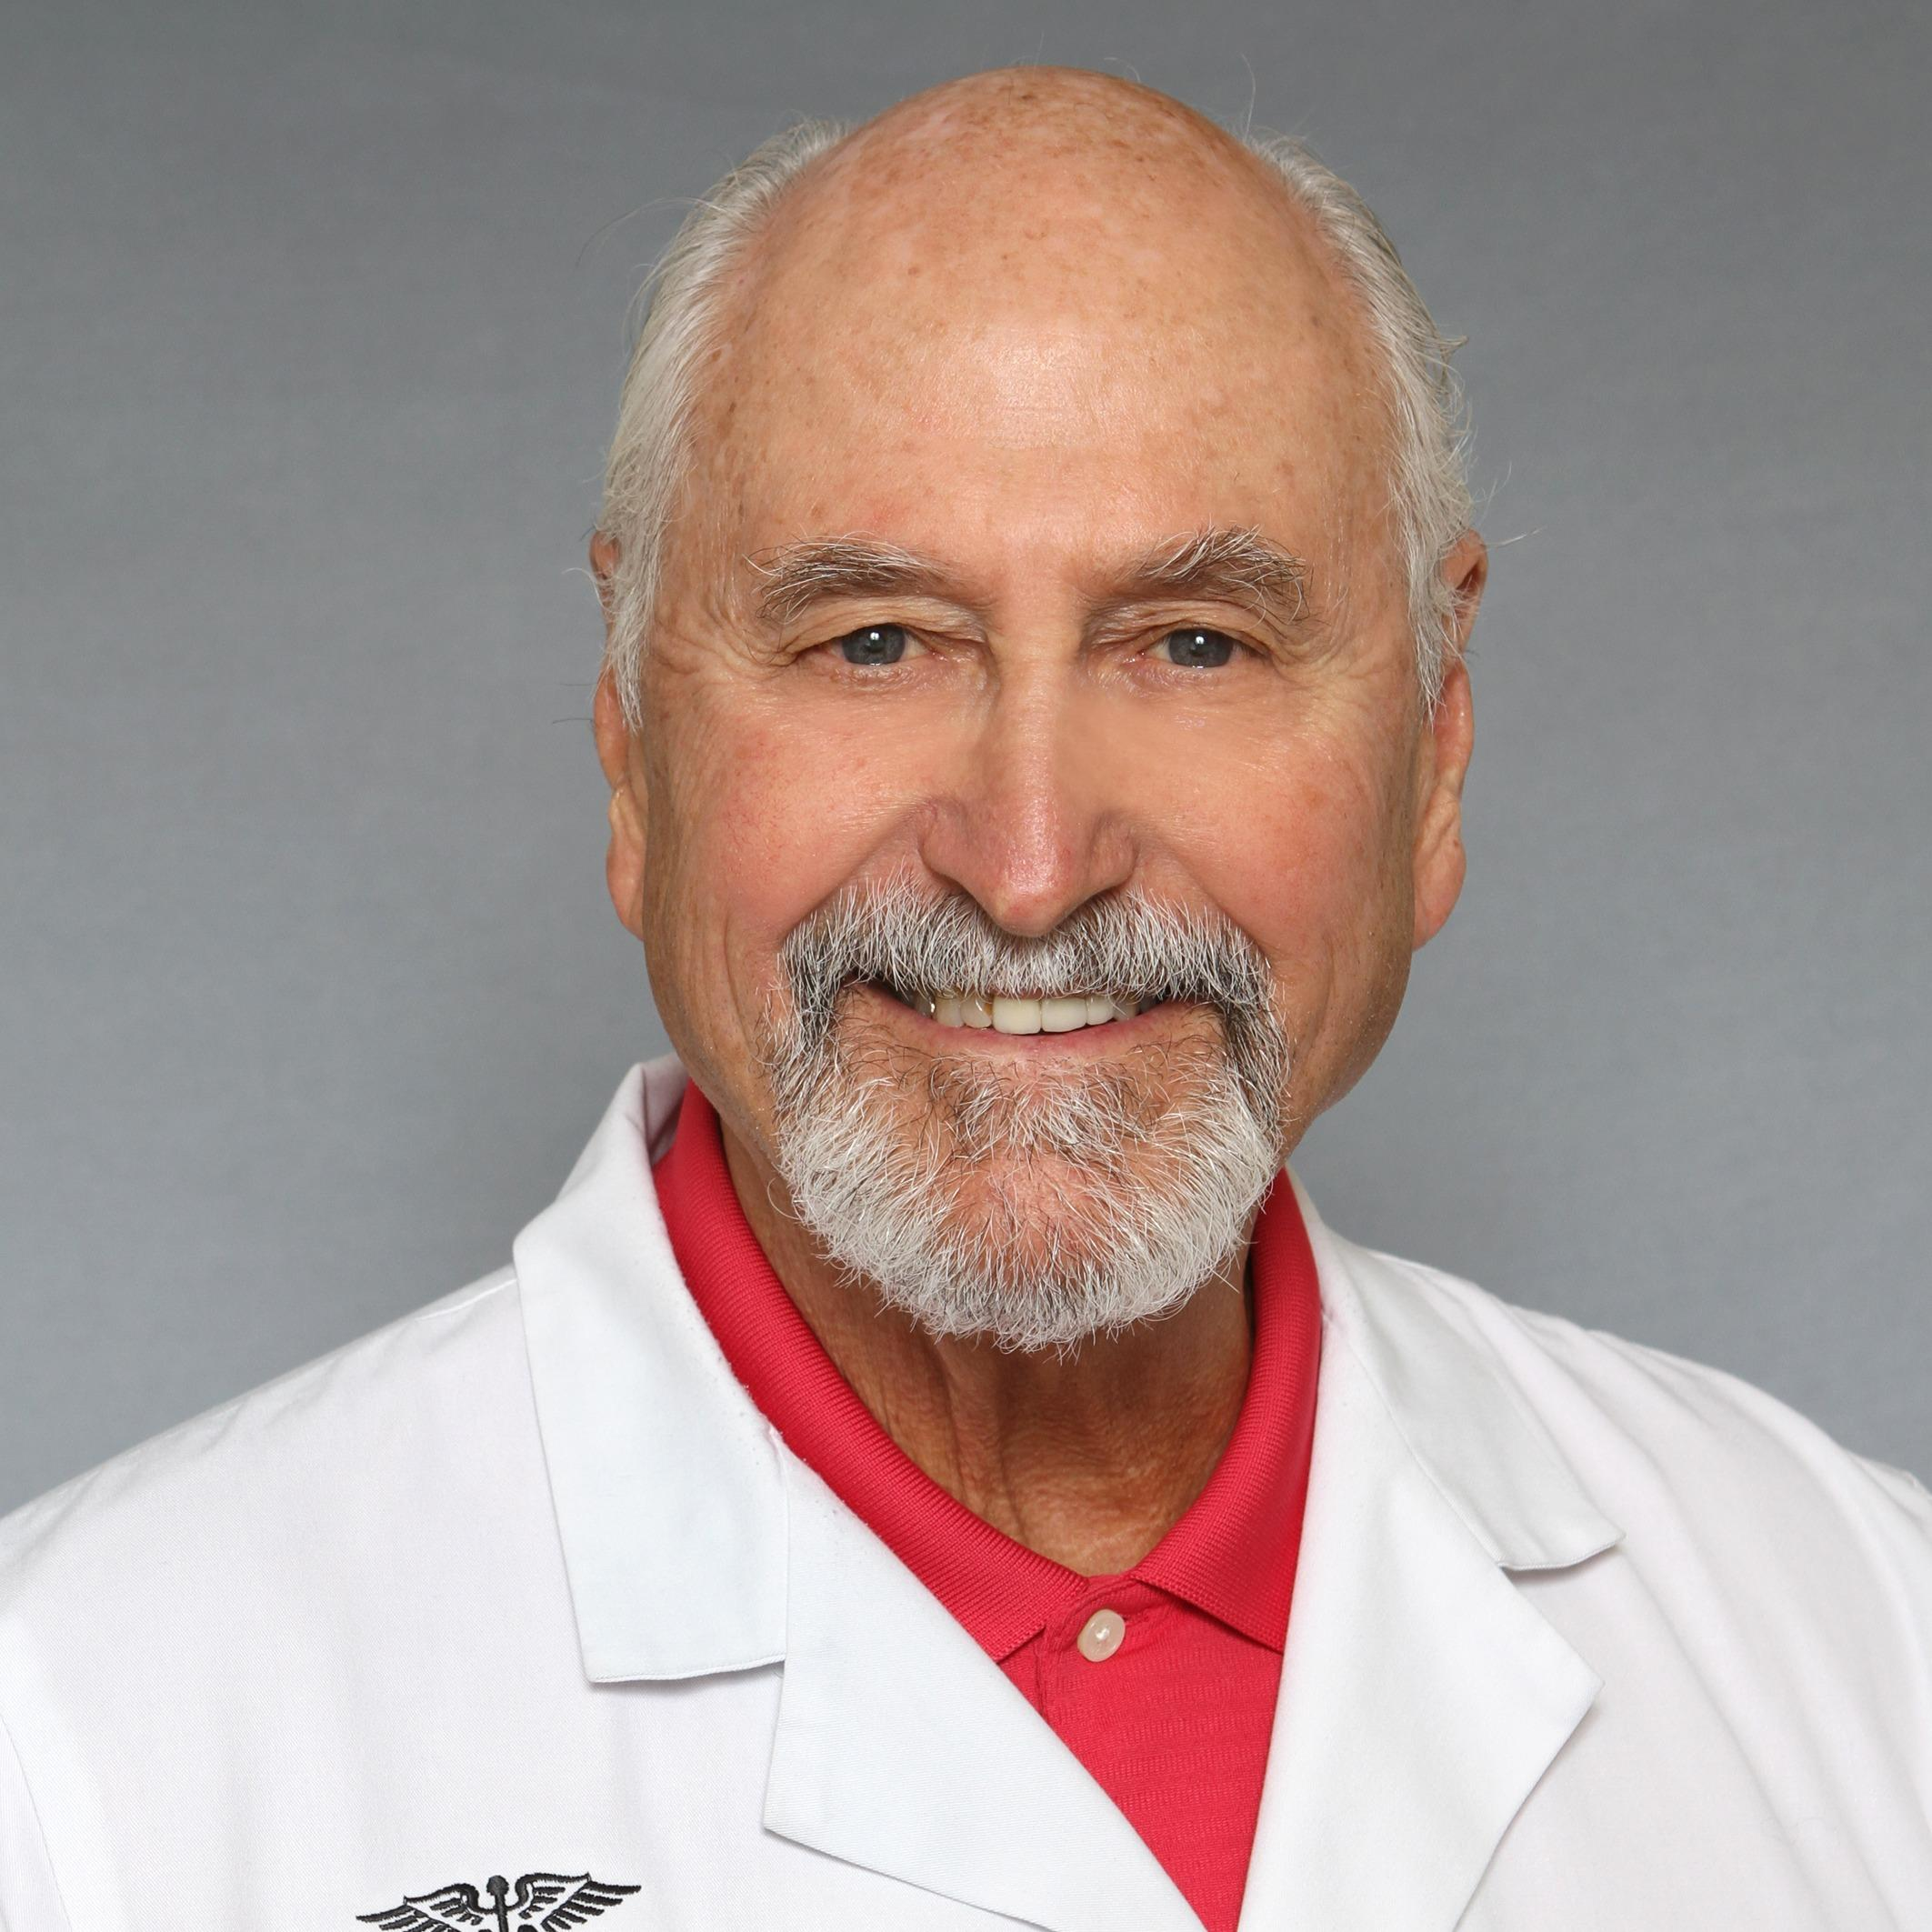 William R. Crumpton, MD